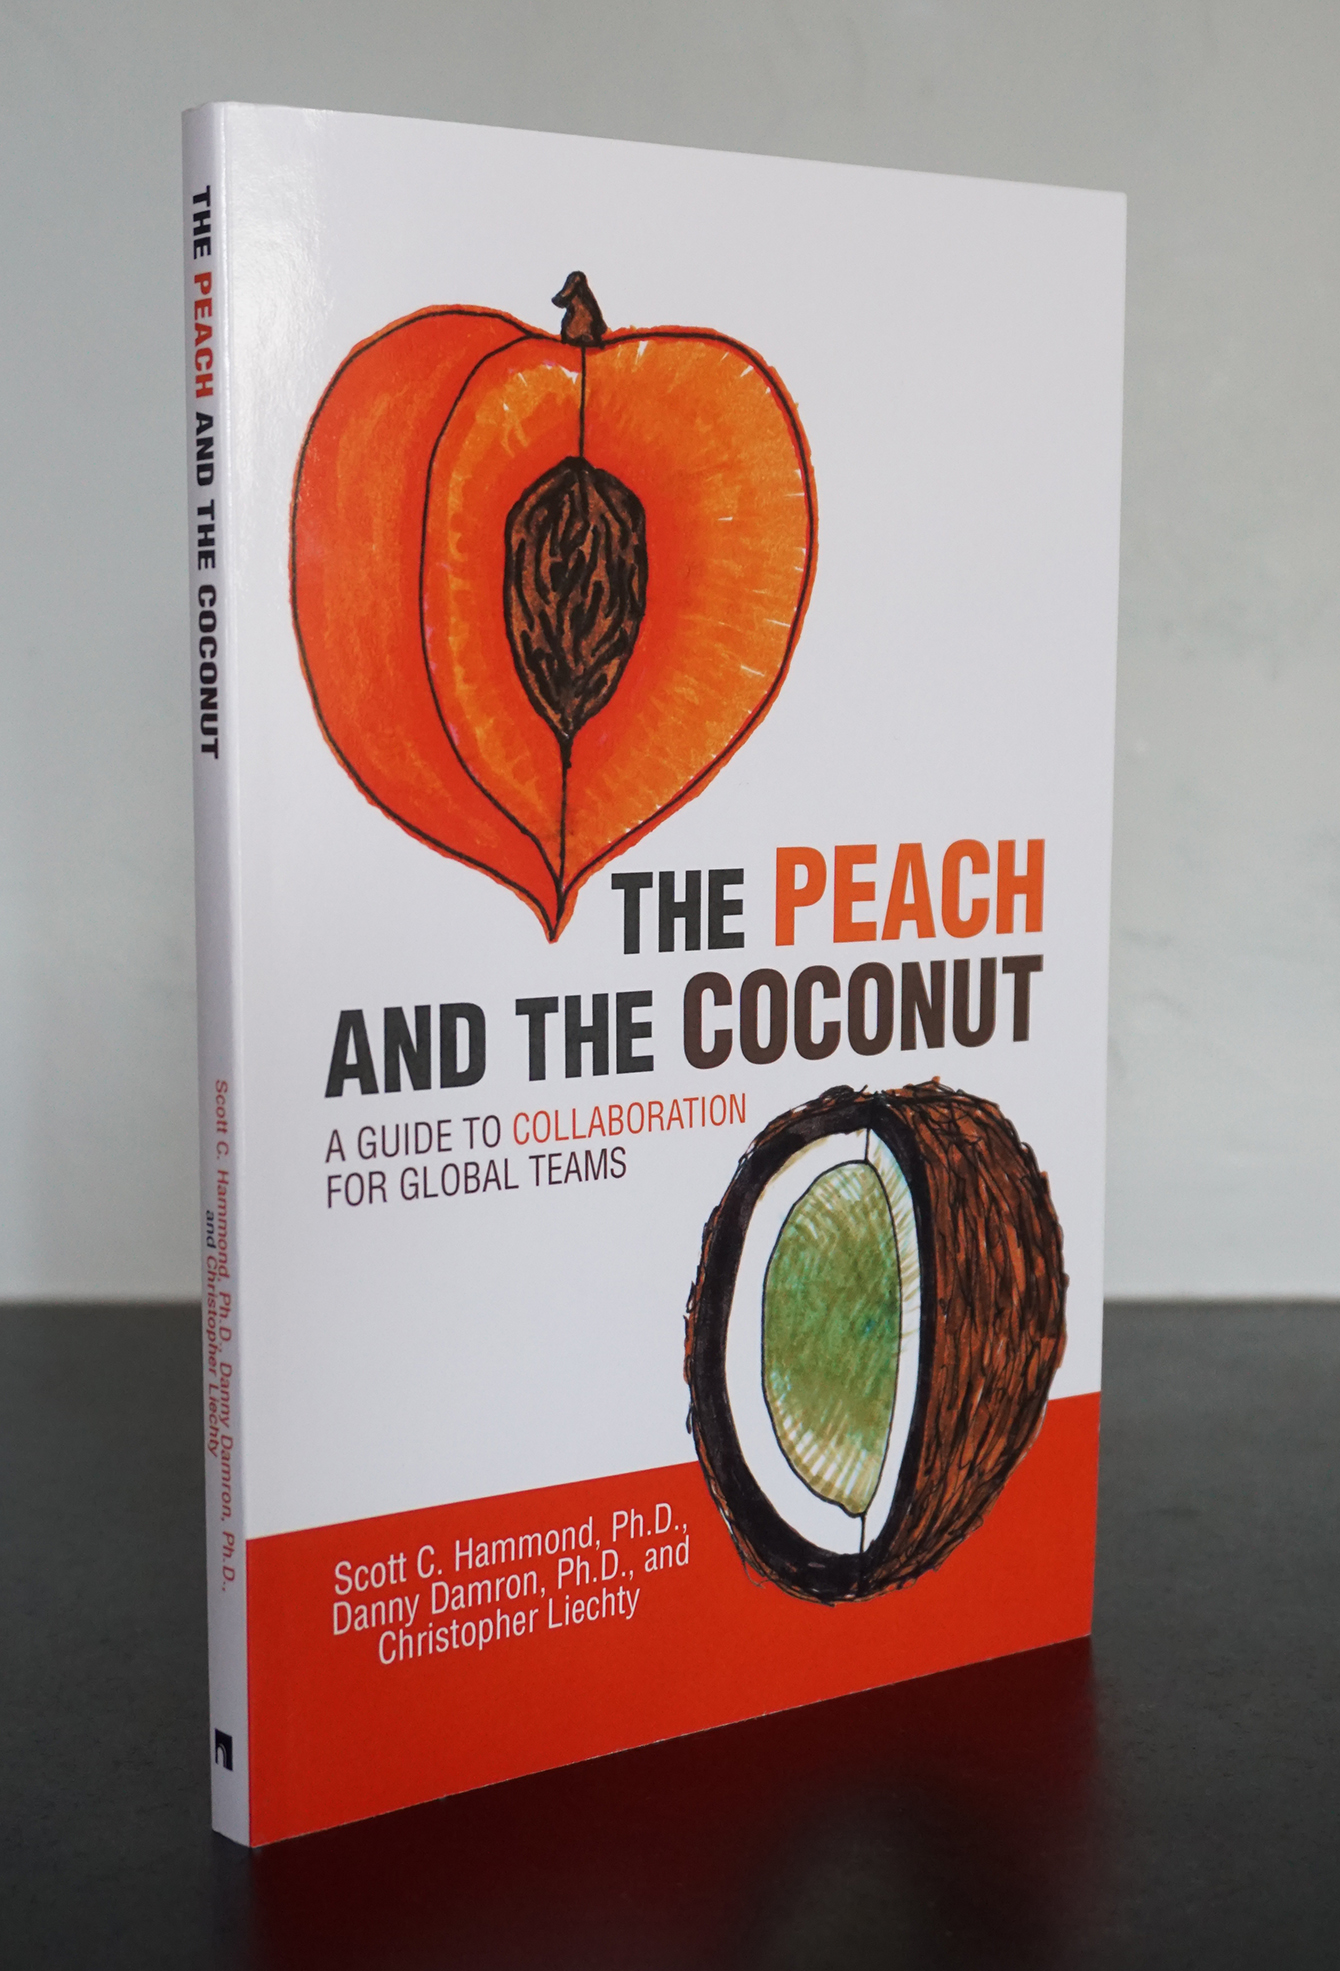 Peach-Coconut_LeadershipEd1_1340x1971.jpg